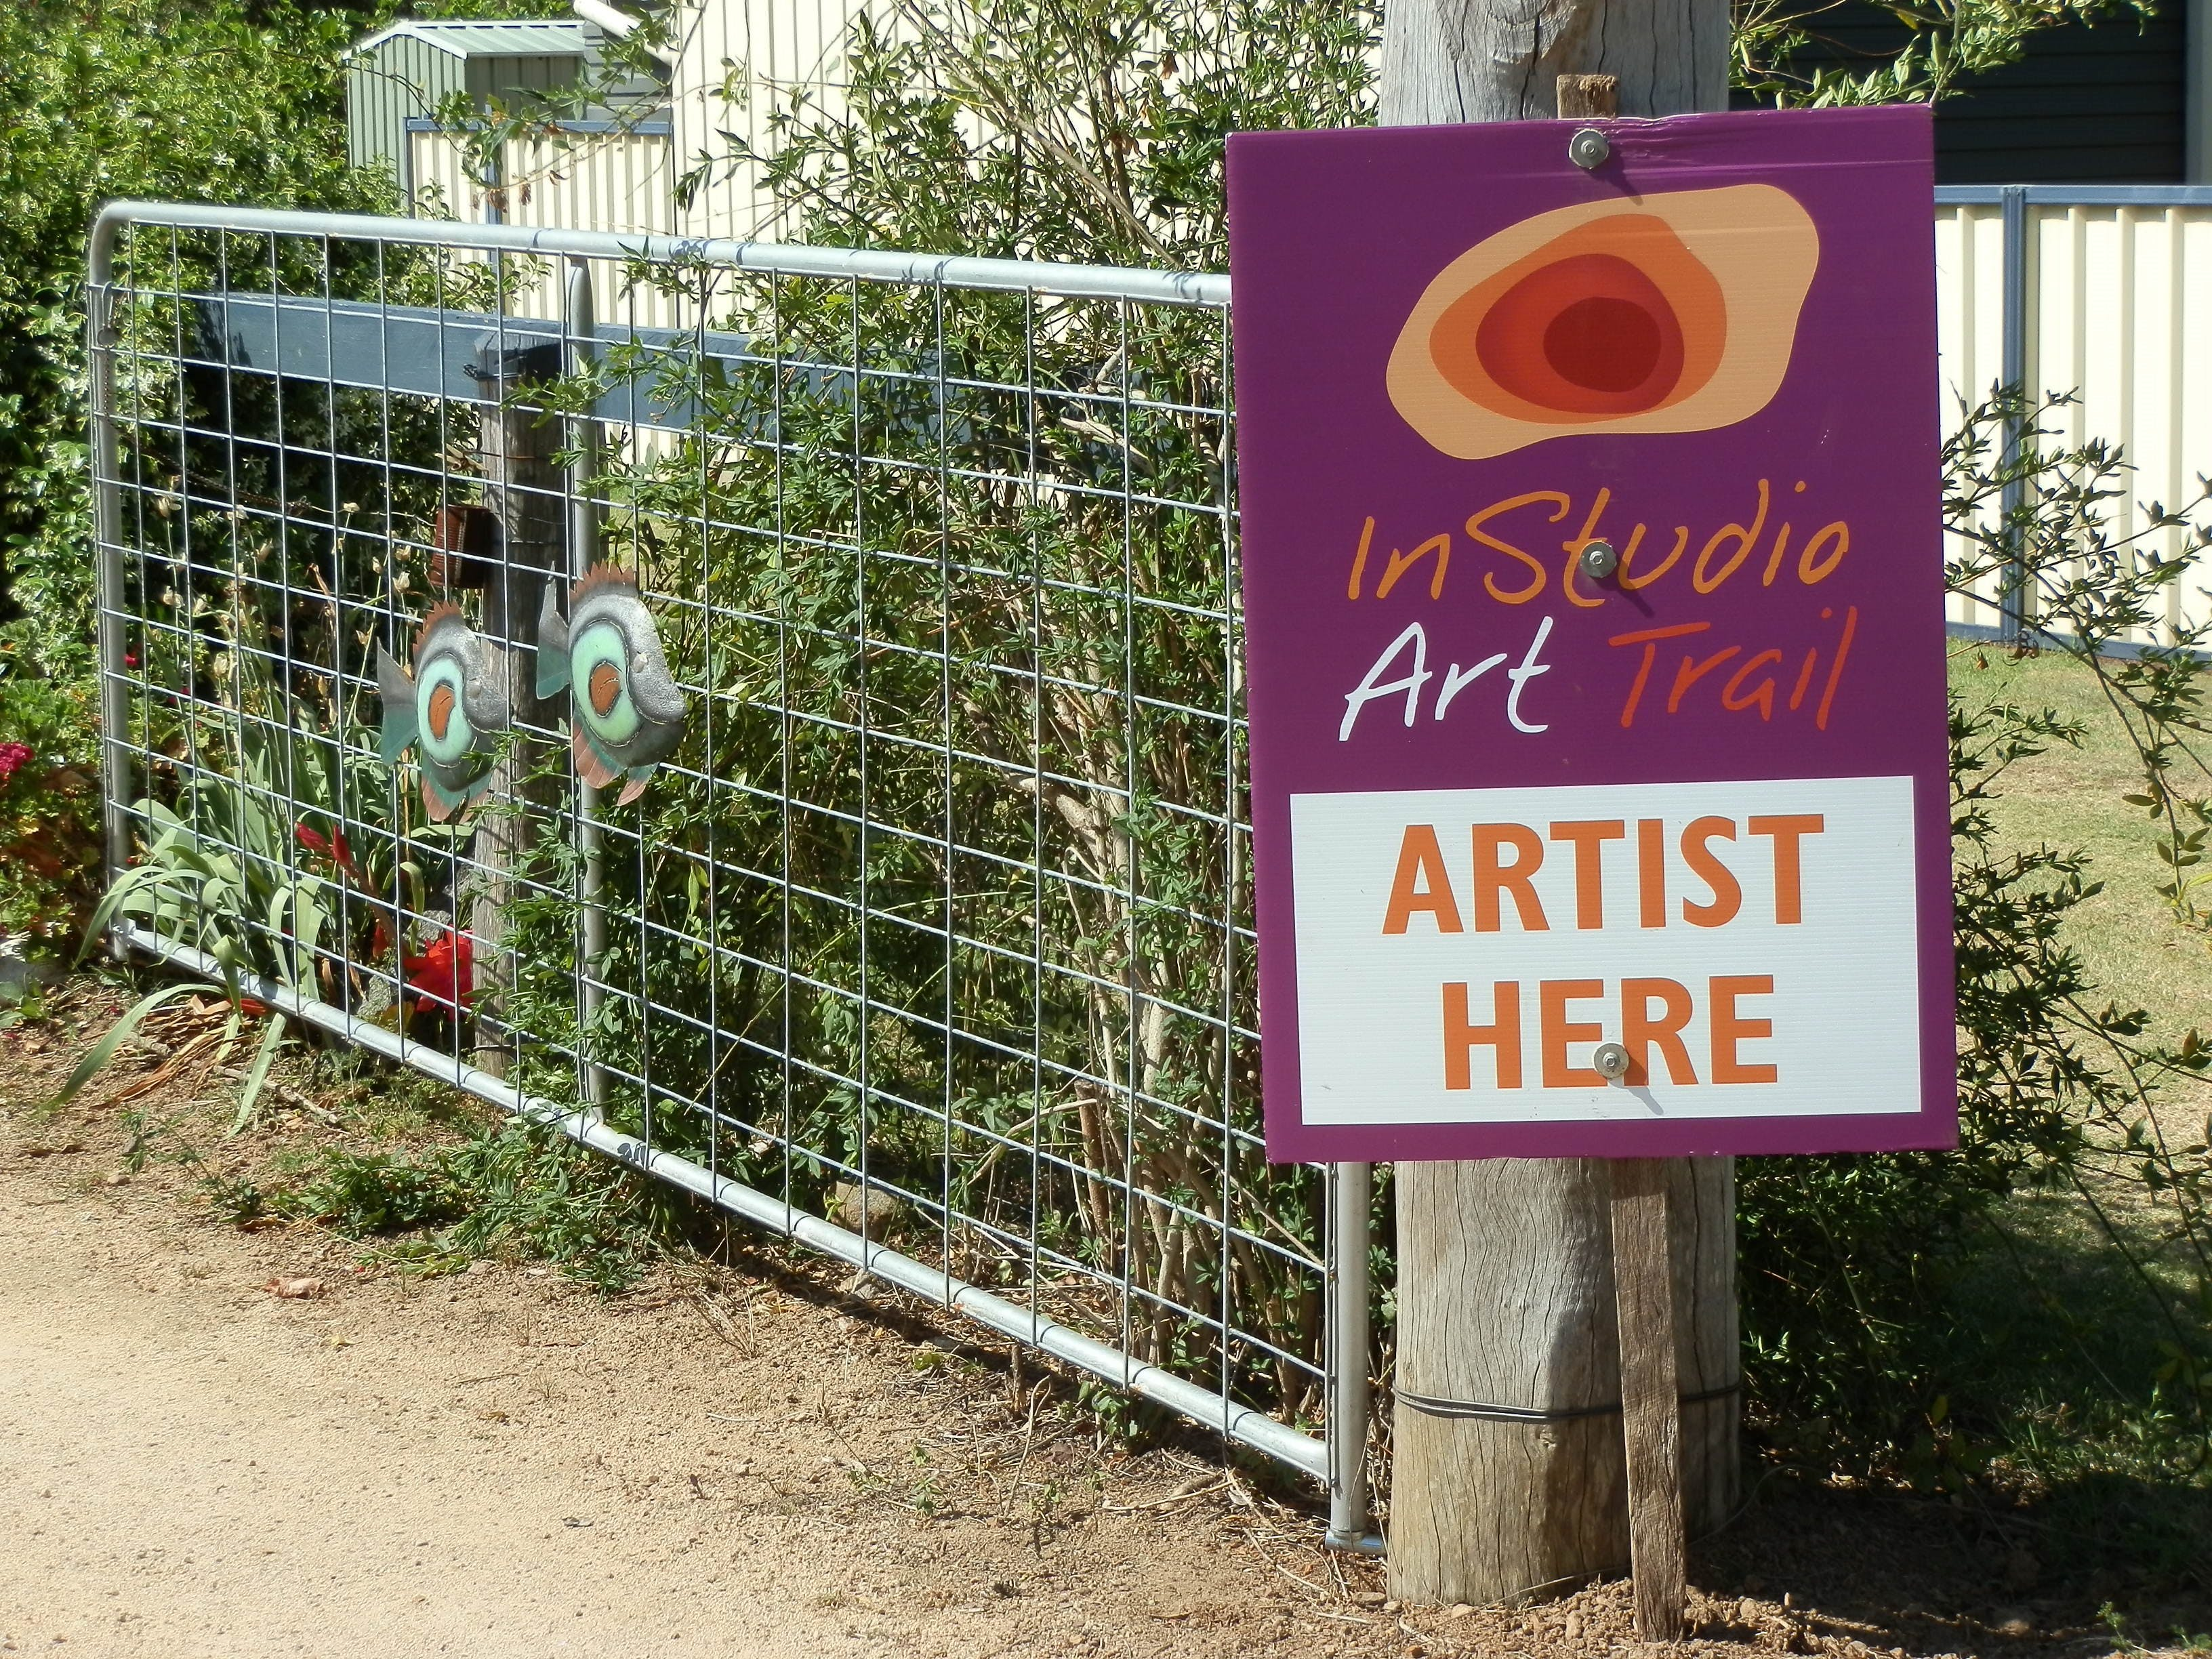 InStudio Art Trail Logo and Images